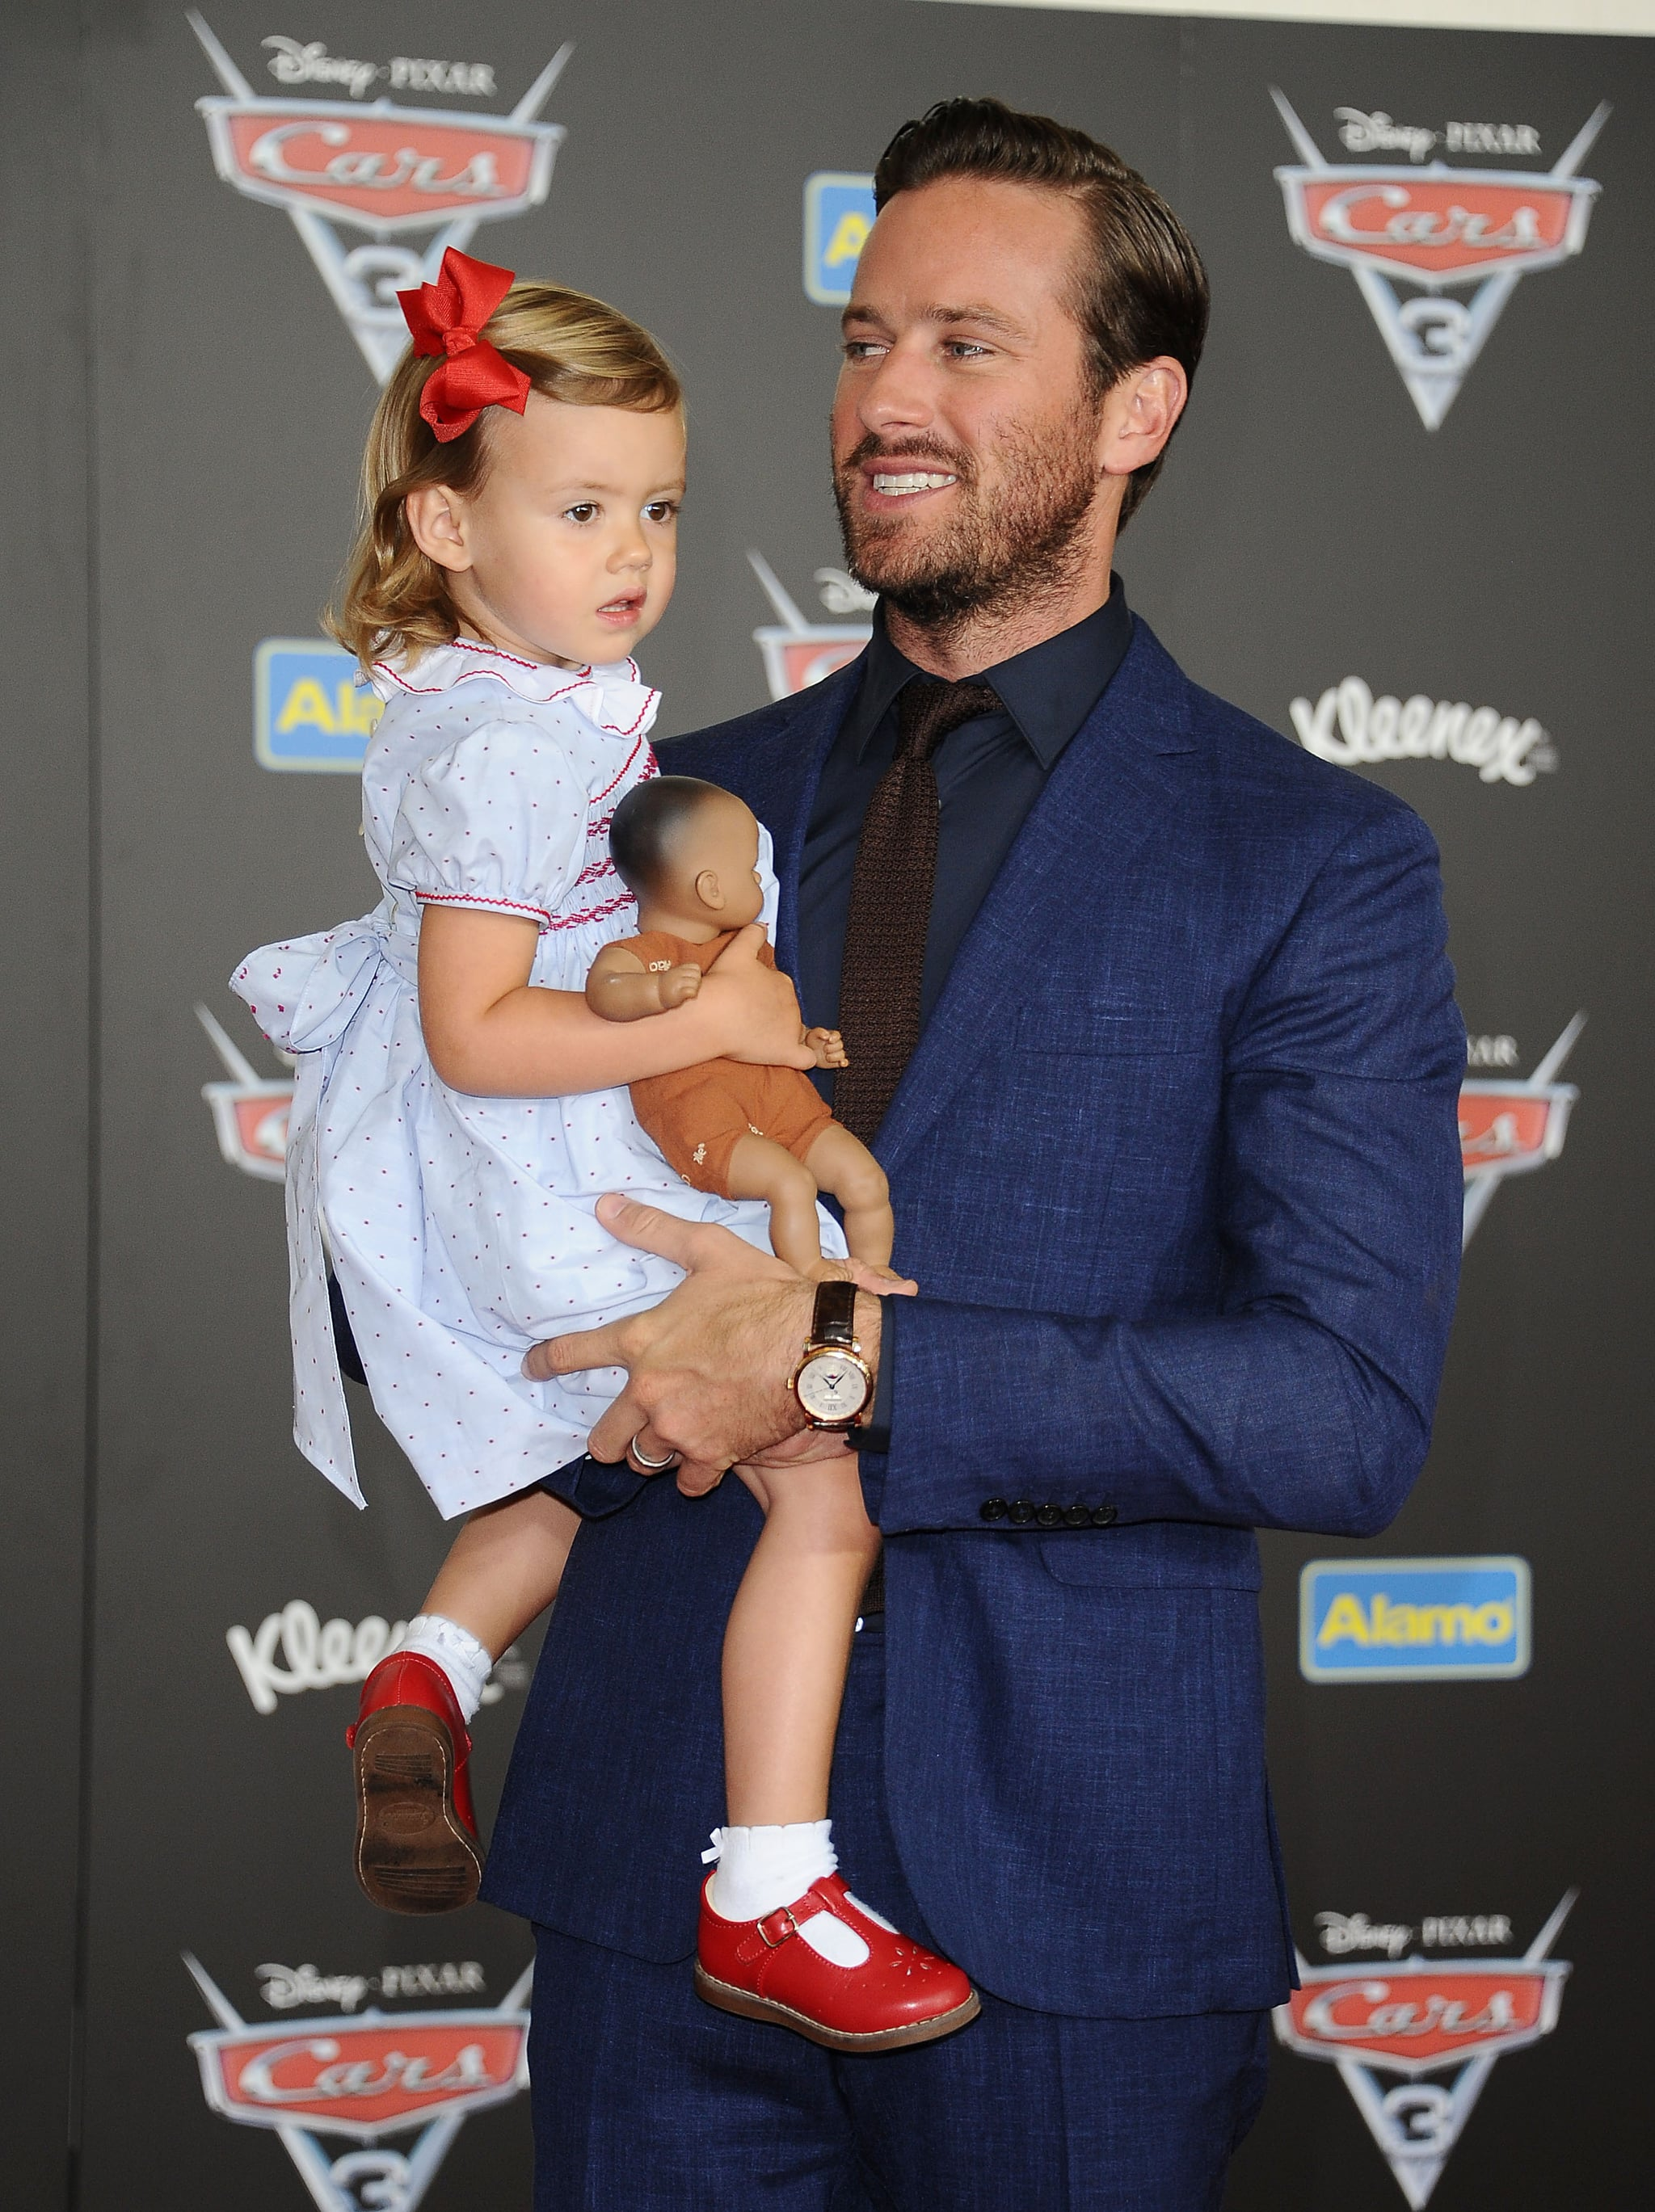 ANAHEIM, CA - JUNE 10:  Actor Armie Hammer and daughter Harper Hammer attend the premiere of